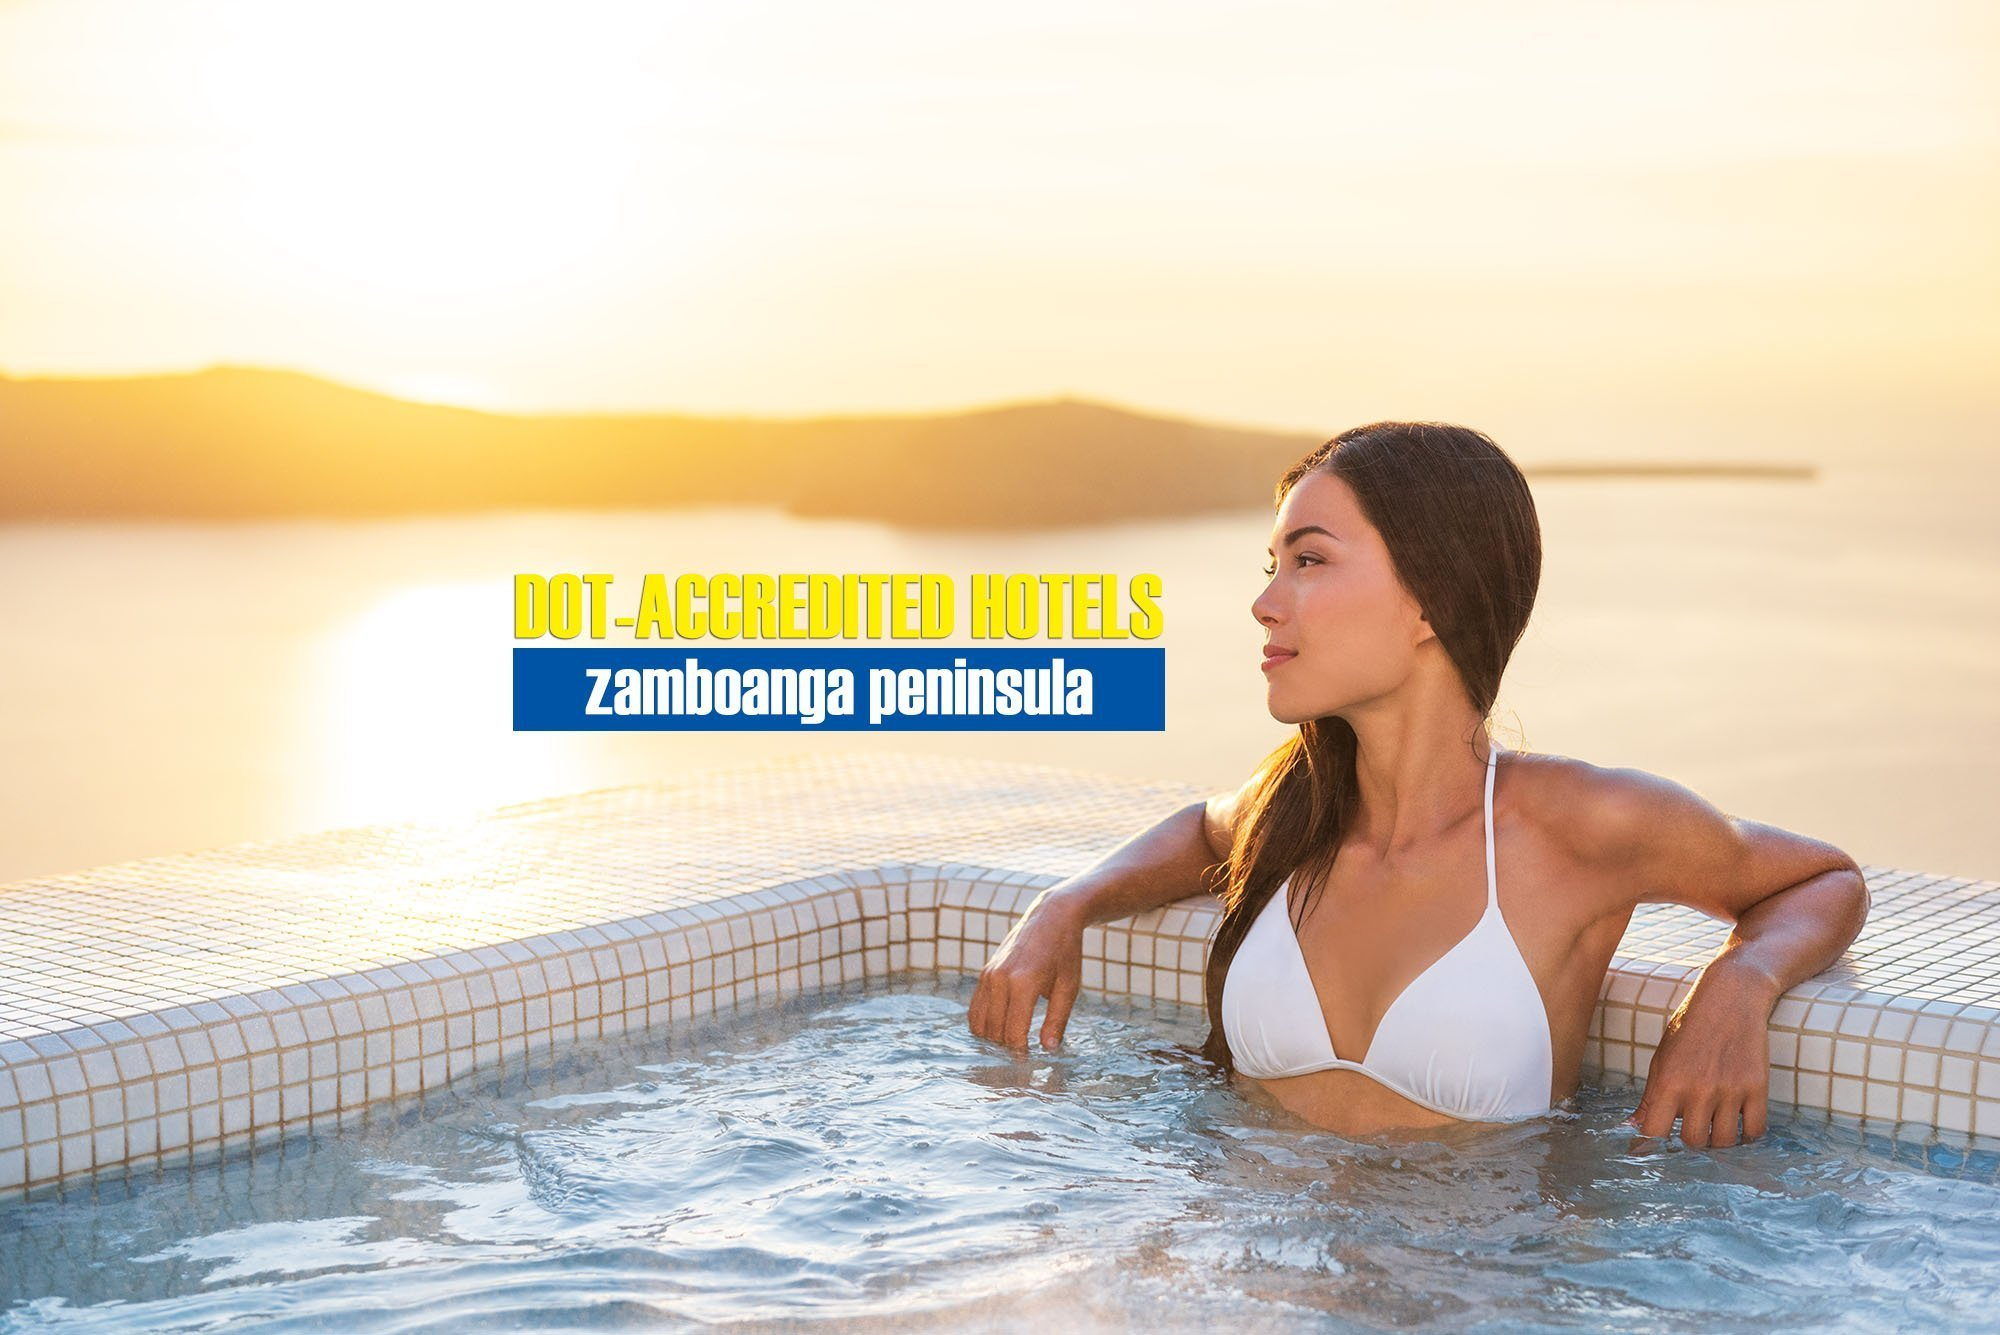 List of DOT-Accredited Hotels in the Zamboanga Peninsula